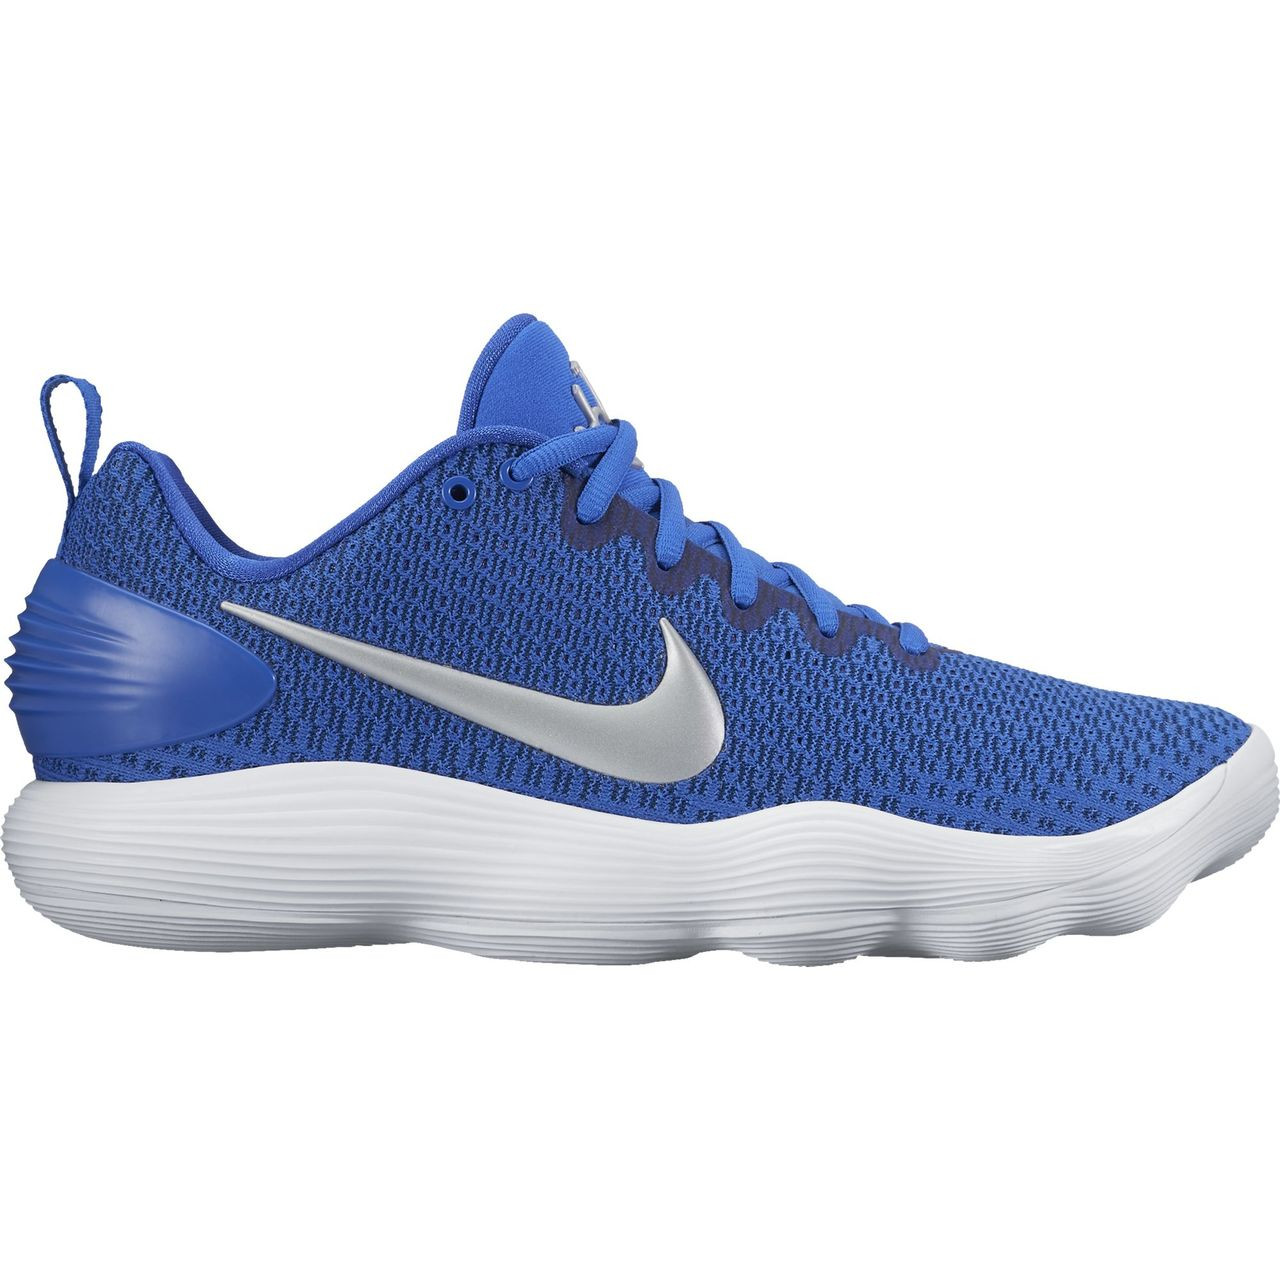 low priced a3a58 994ef Nike Men s HyperDunk Low 2017 TB - Blue - Athlete Performance Solutions EU